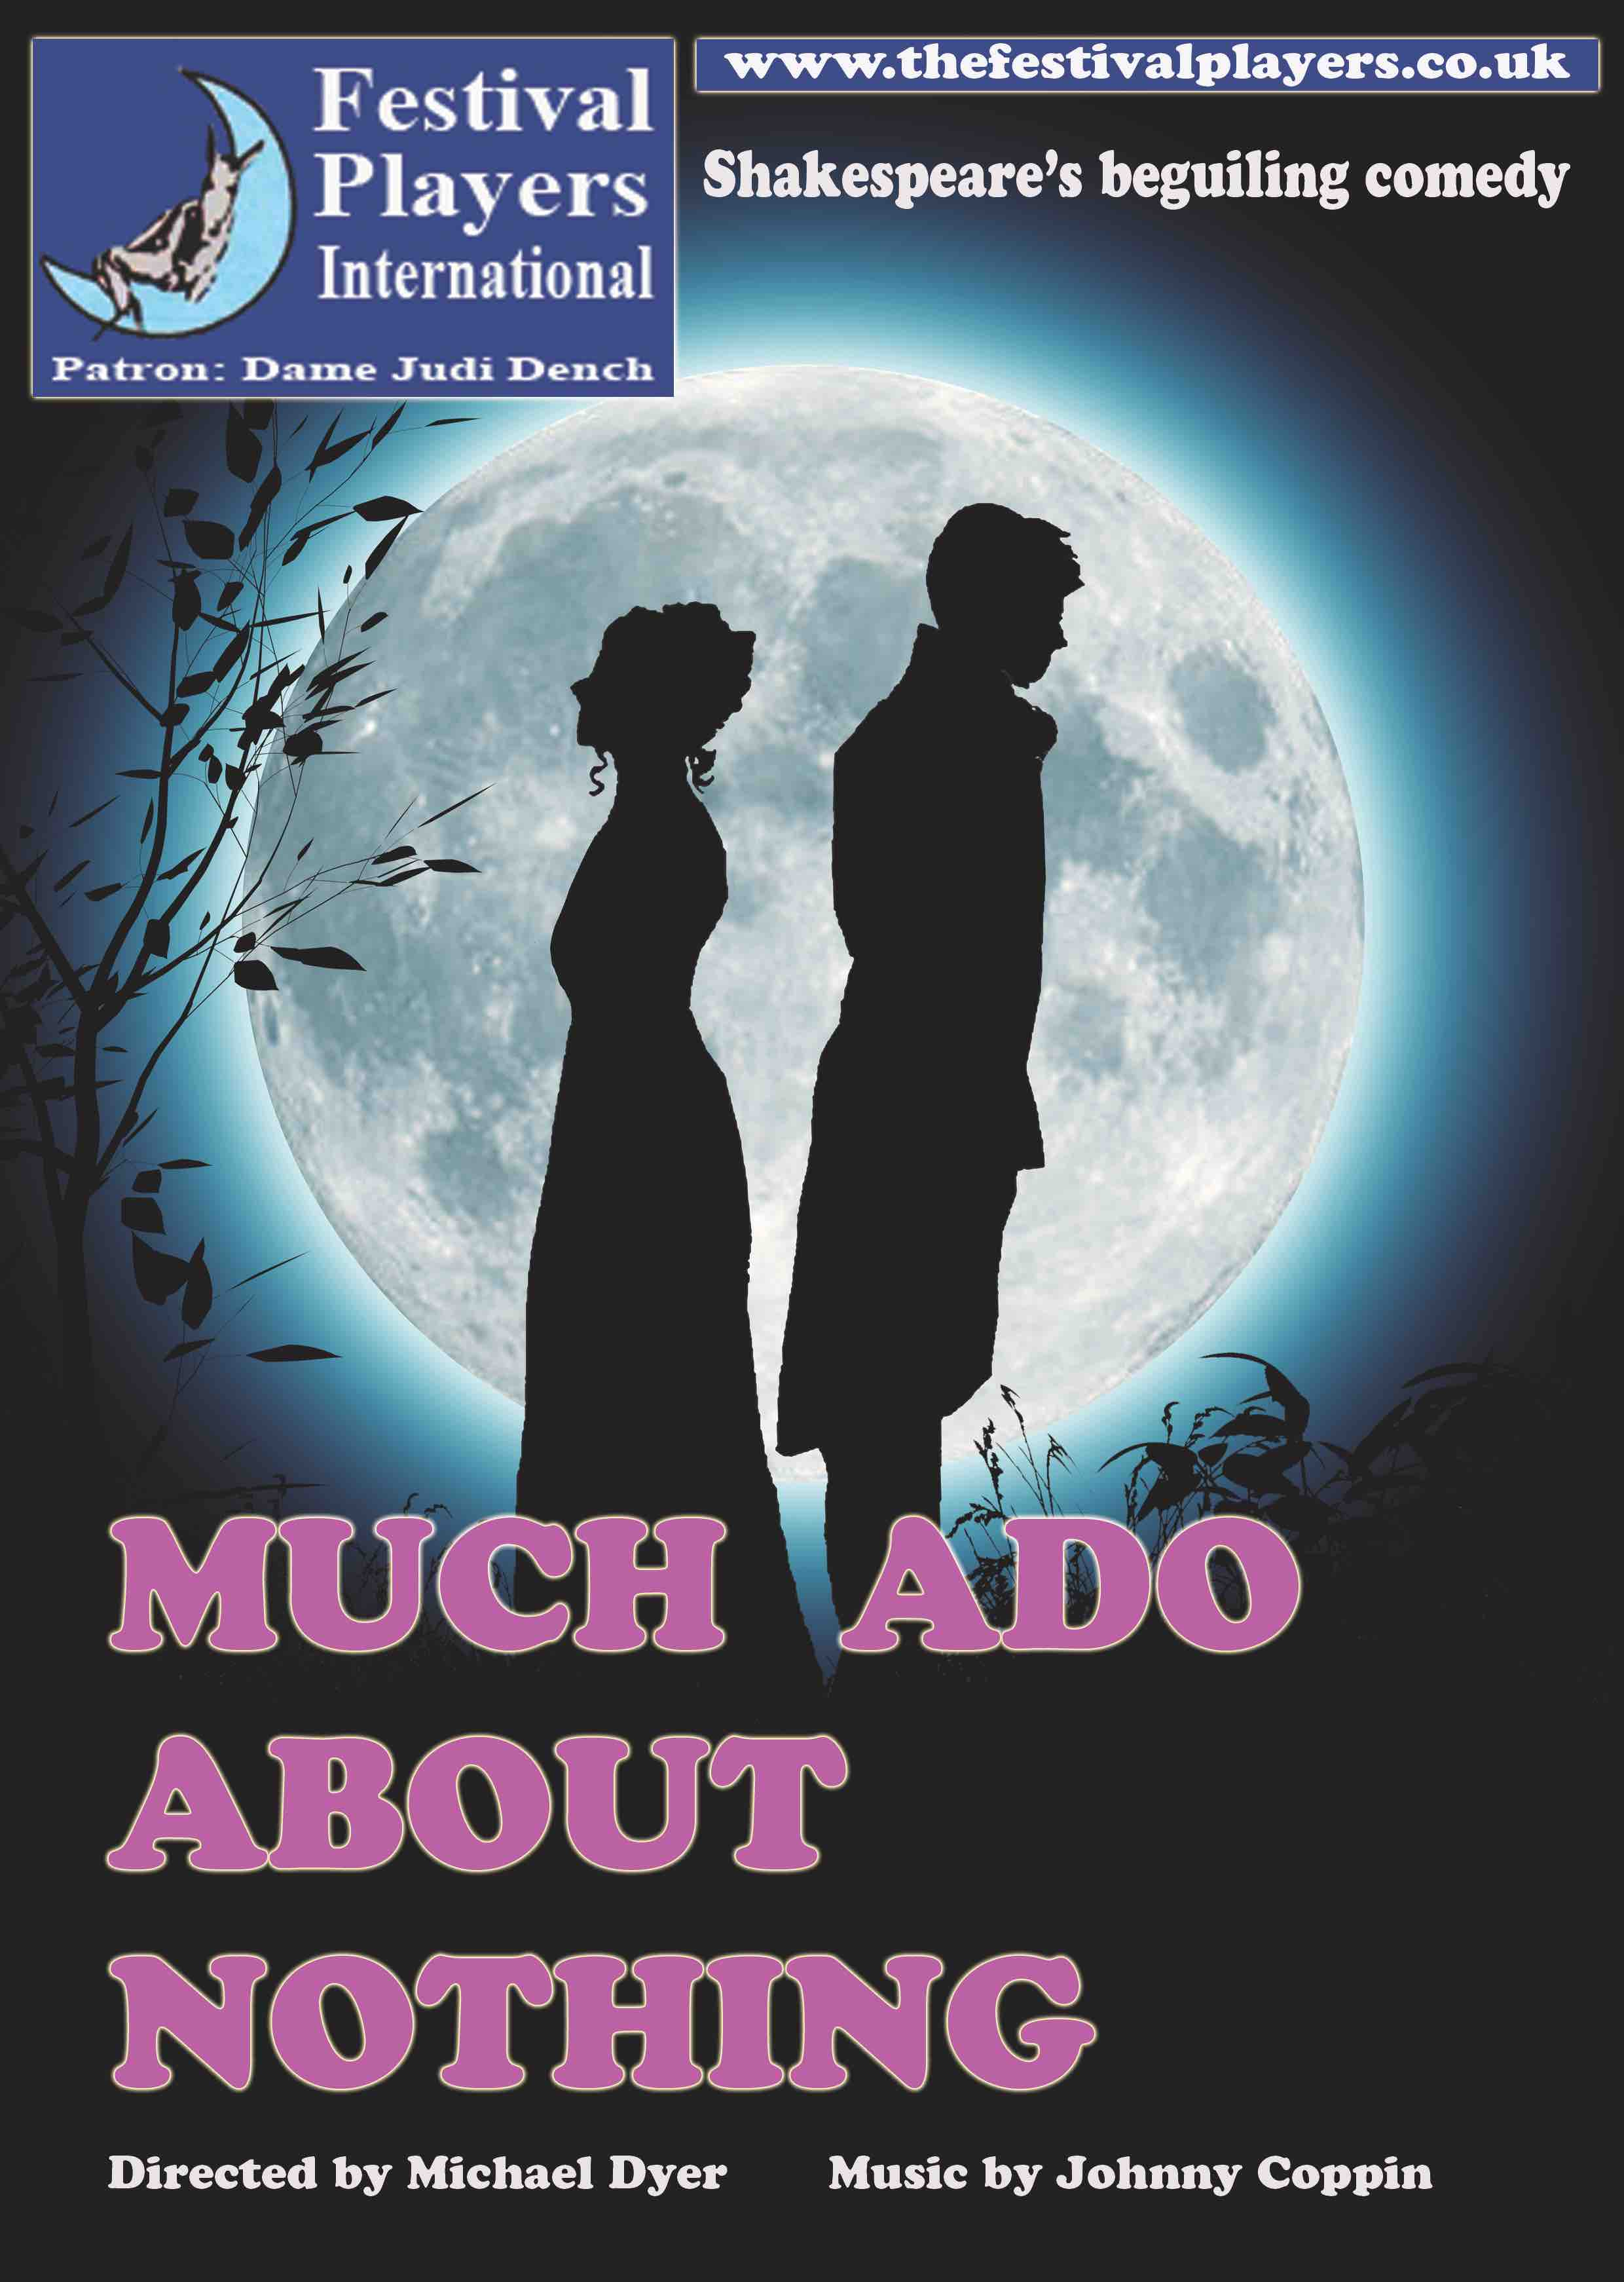 Much Ado About Nothing - William Shakespeare banner image